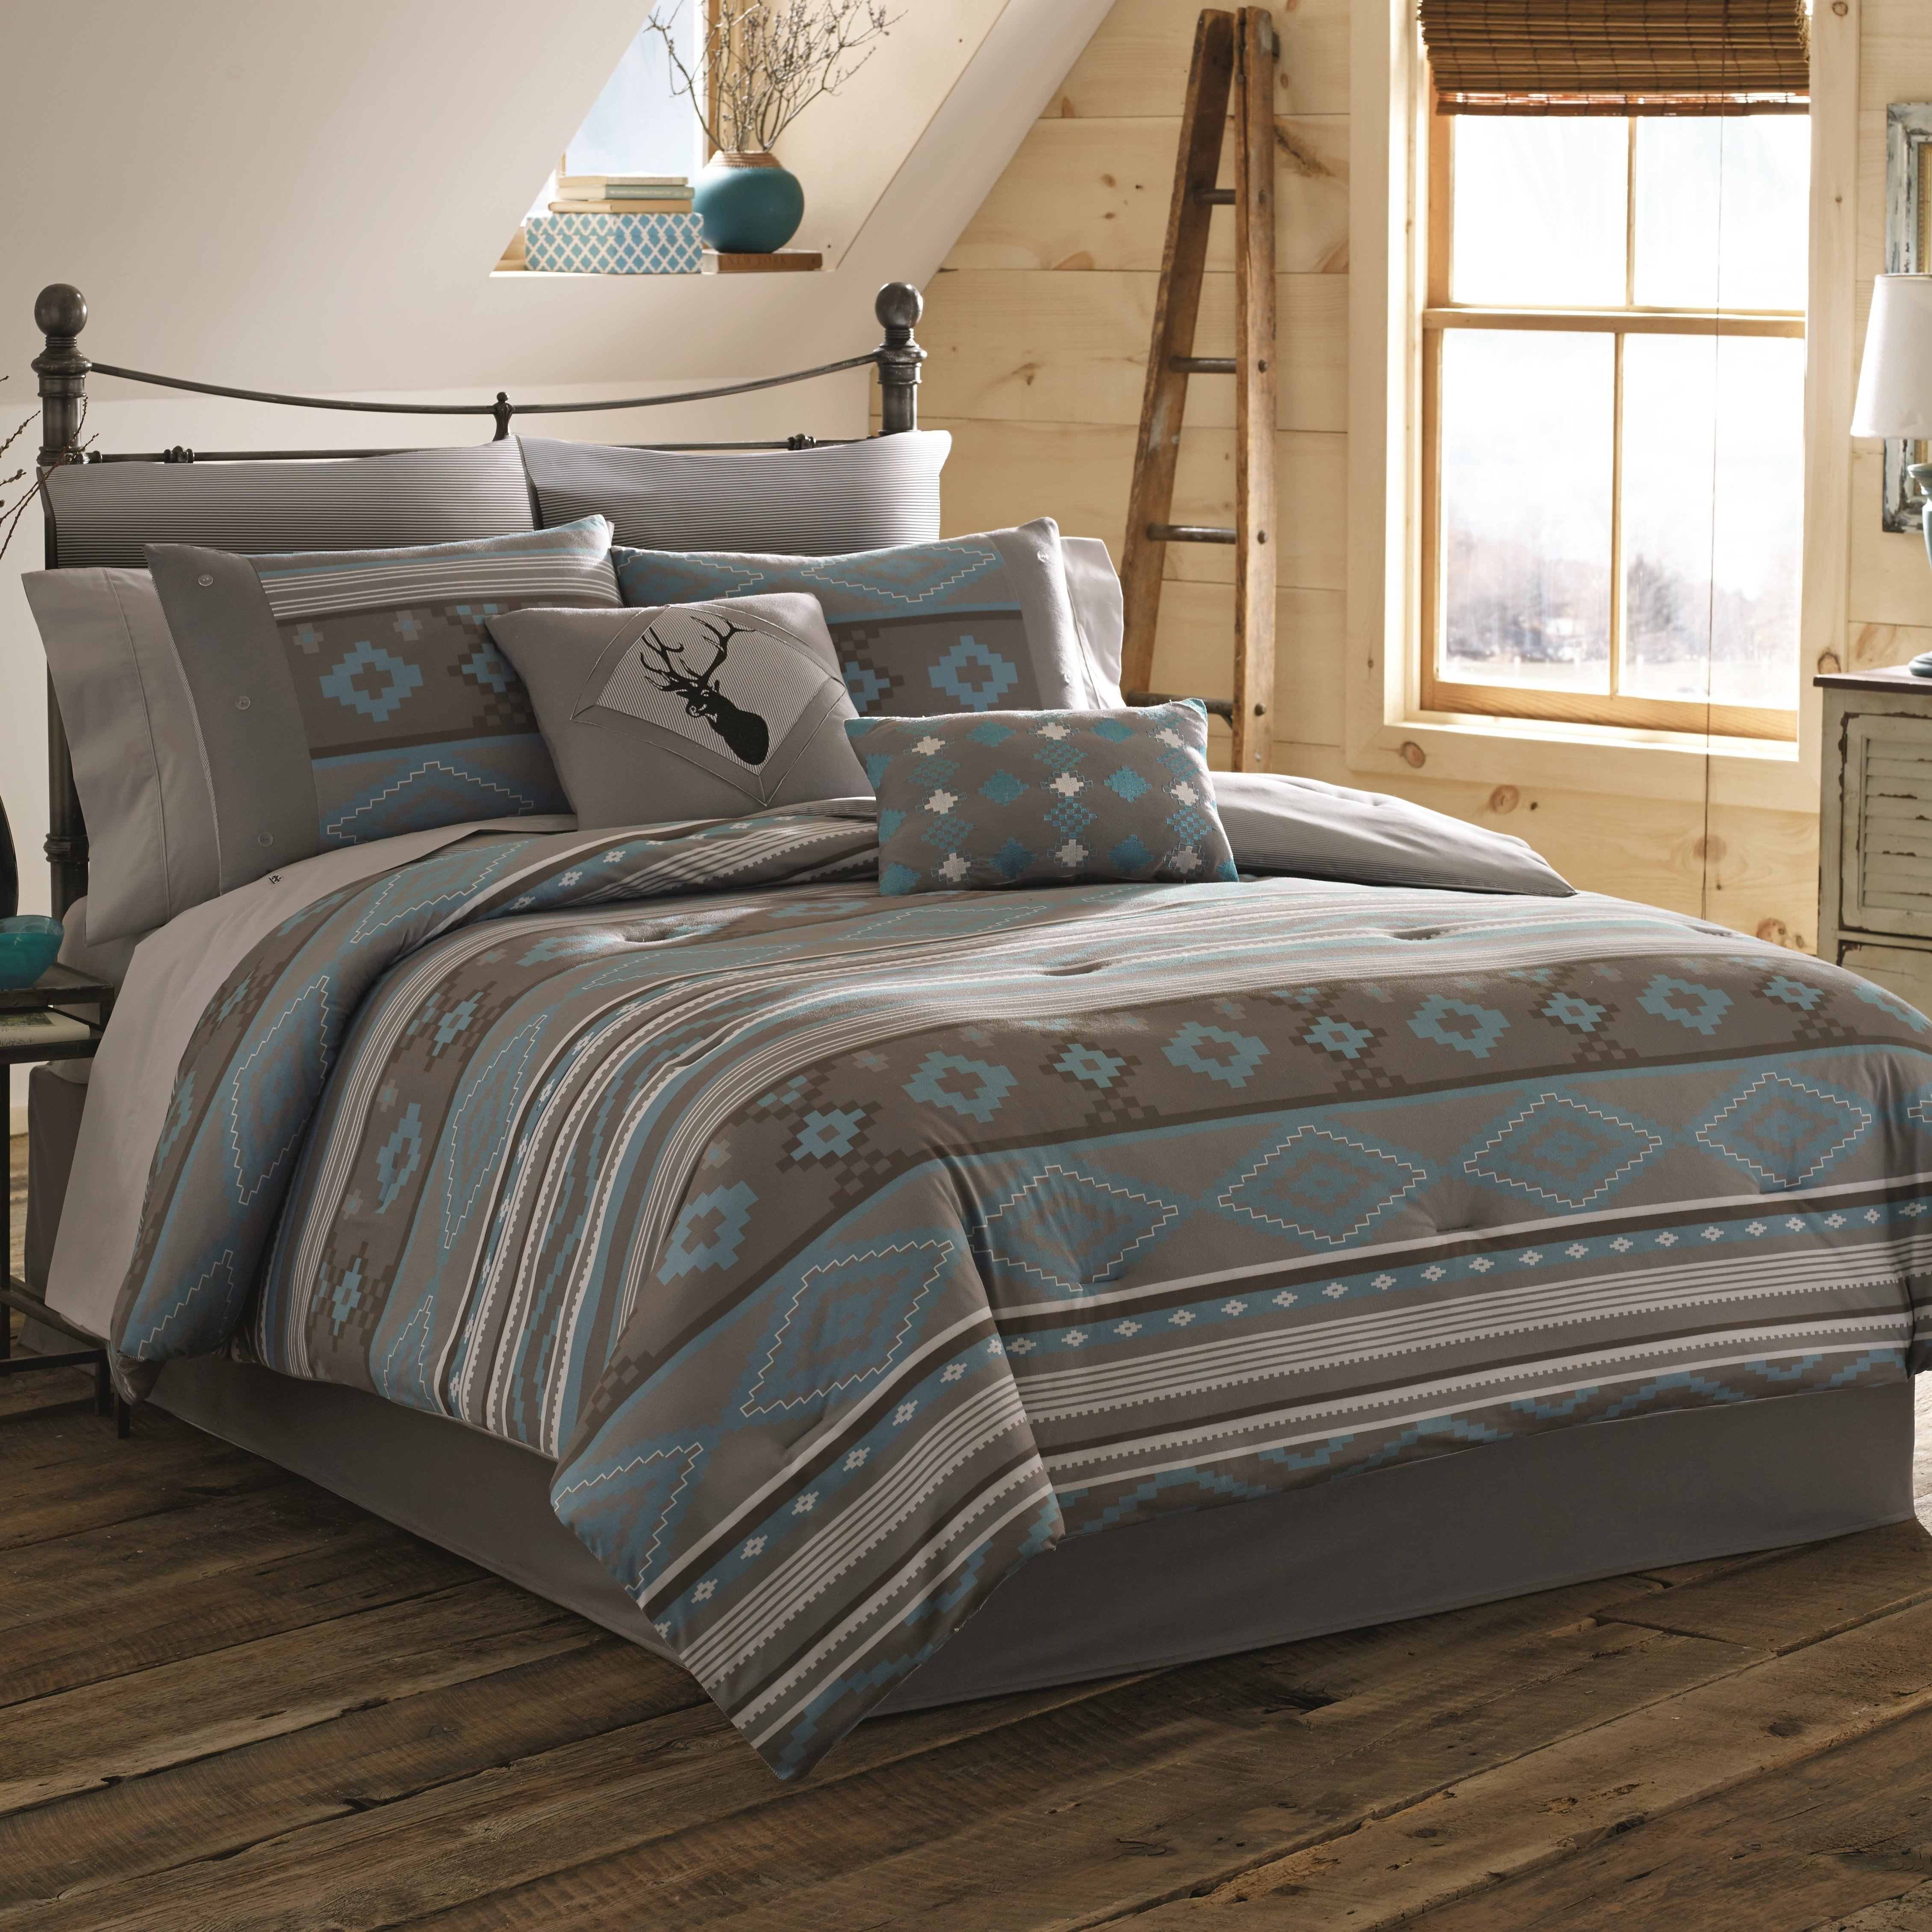 Best True Timber Southwest Bedding Comforter Collection With Pictures